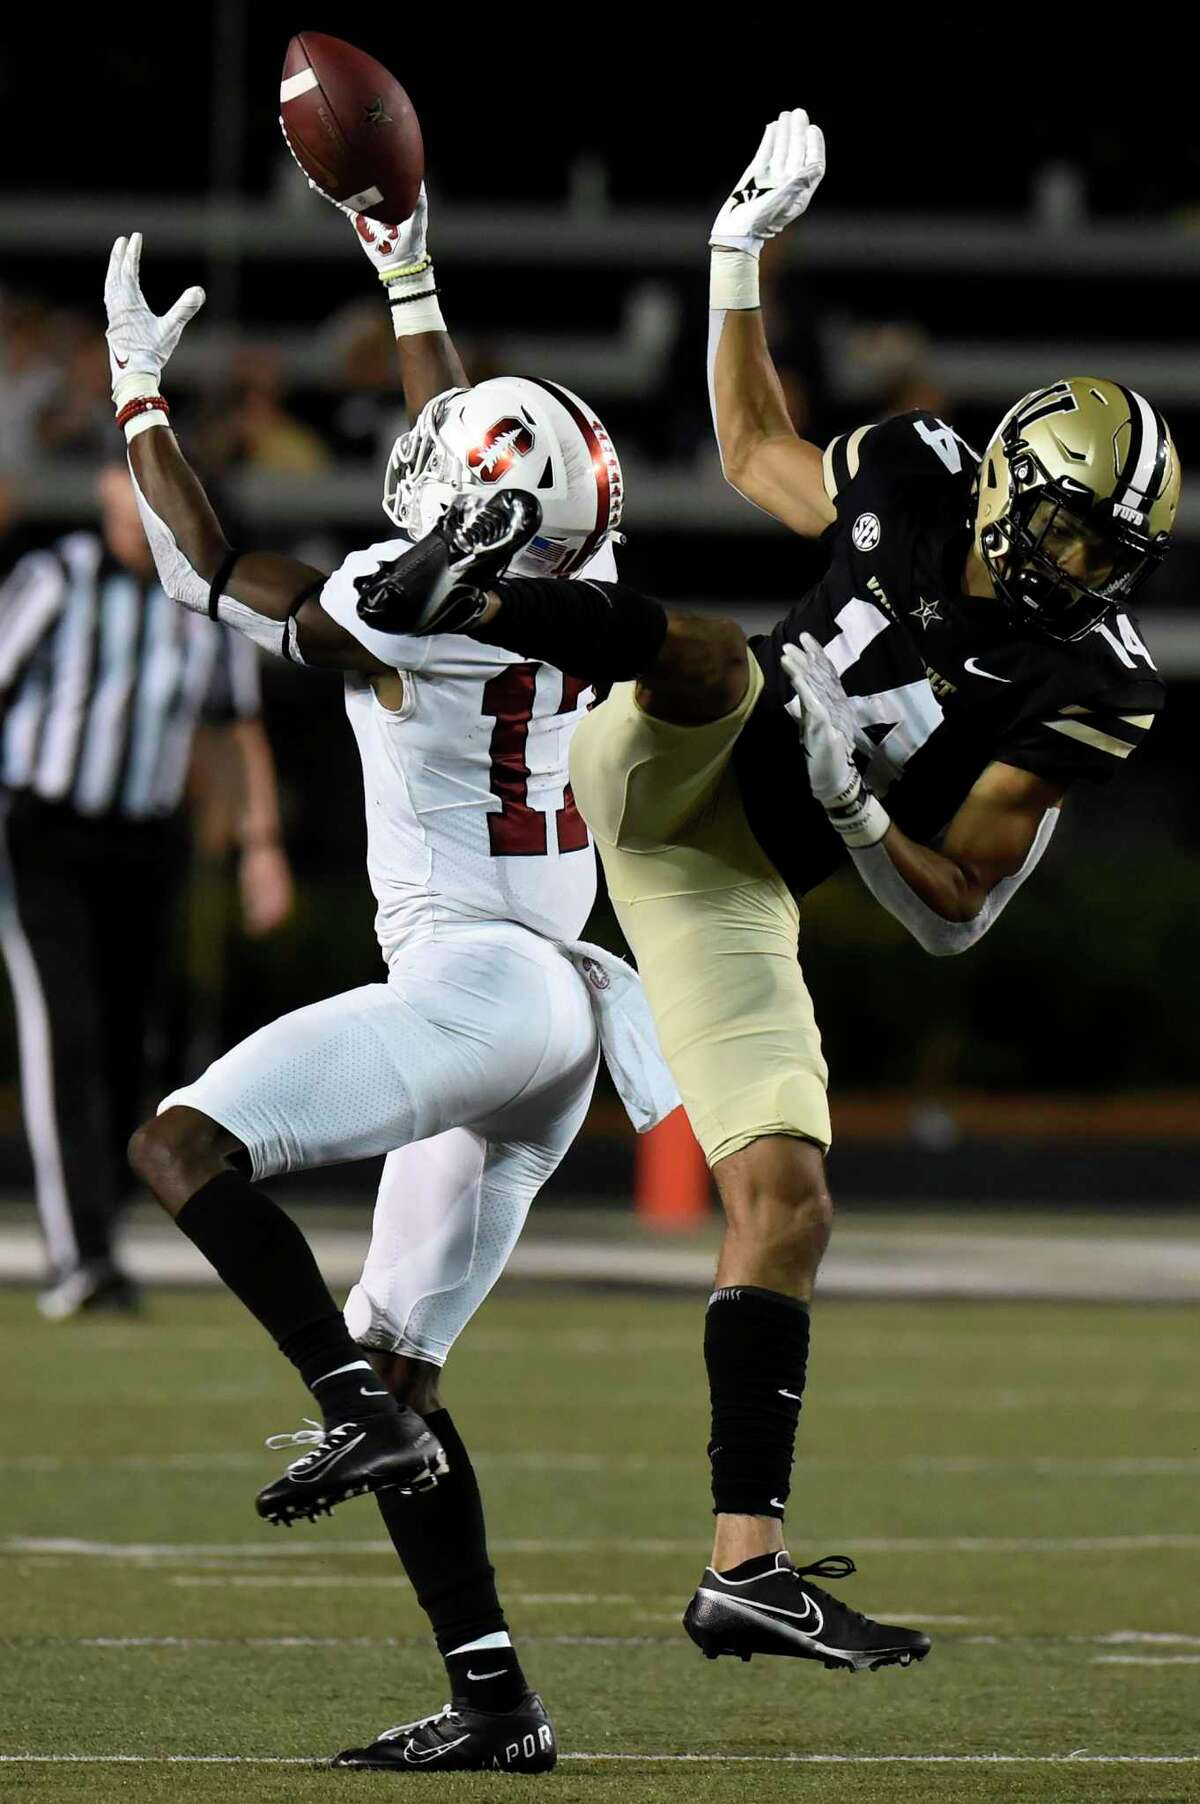 Stanford cornerback Kyu Blu Kelly (17) breaks up a pass intended for Vanderbilt wide receiver Will Sheppard (14) in the second half of an NCAA college football game Saturday, Sept. 18, 2021, in Nashville, Tenn. (AP Photo/Mark Zaleski)